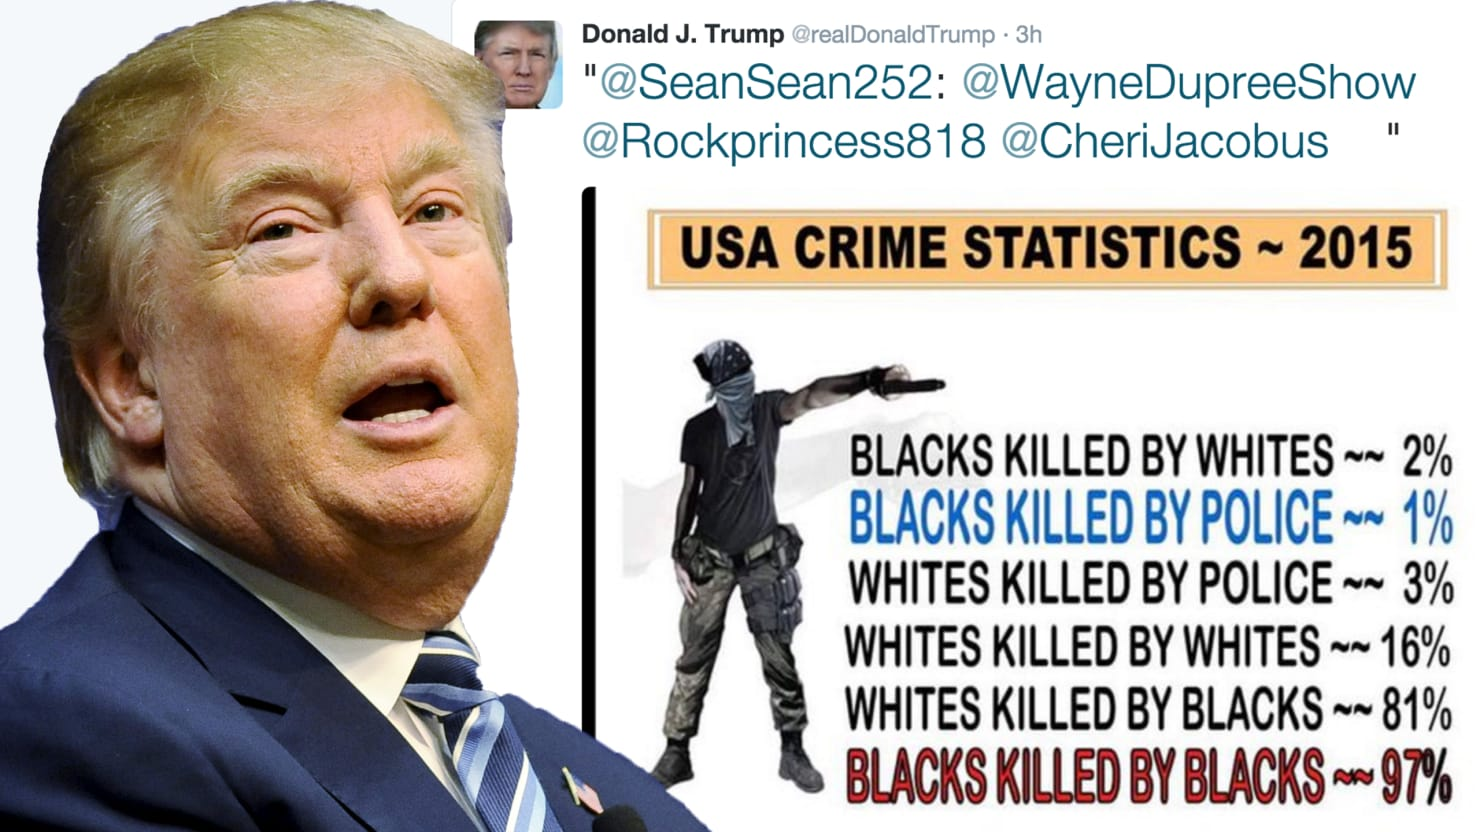 Donald Trump Is Using False Statistics to Make a Racist Point